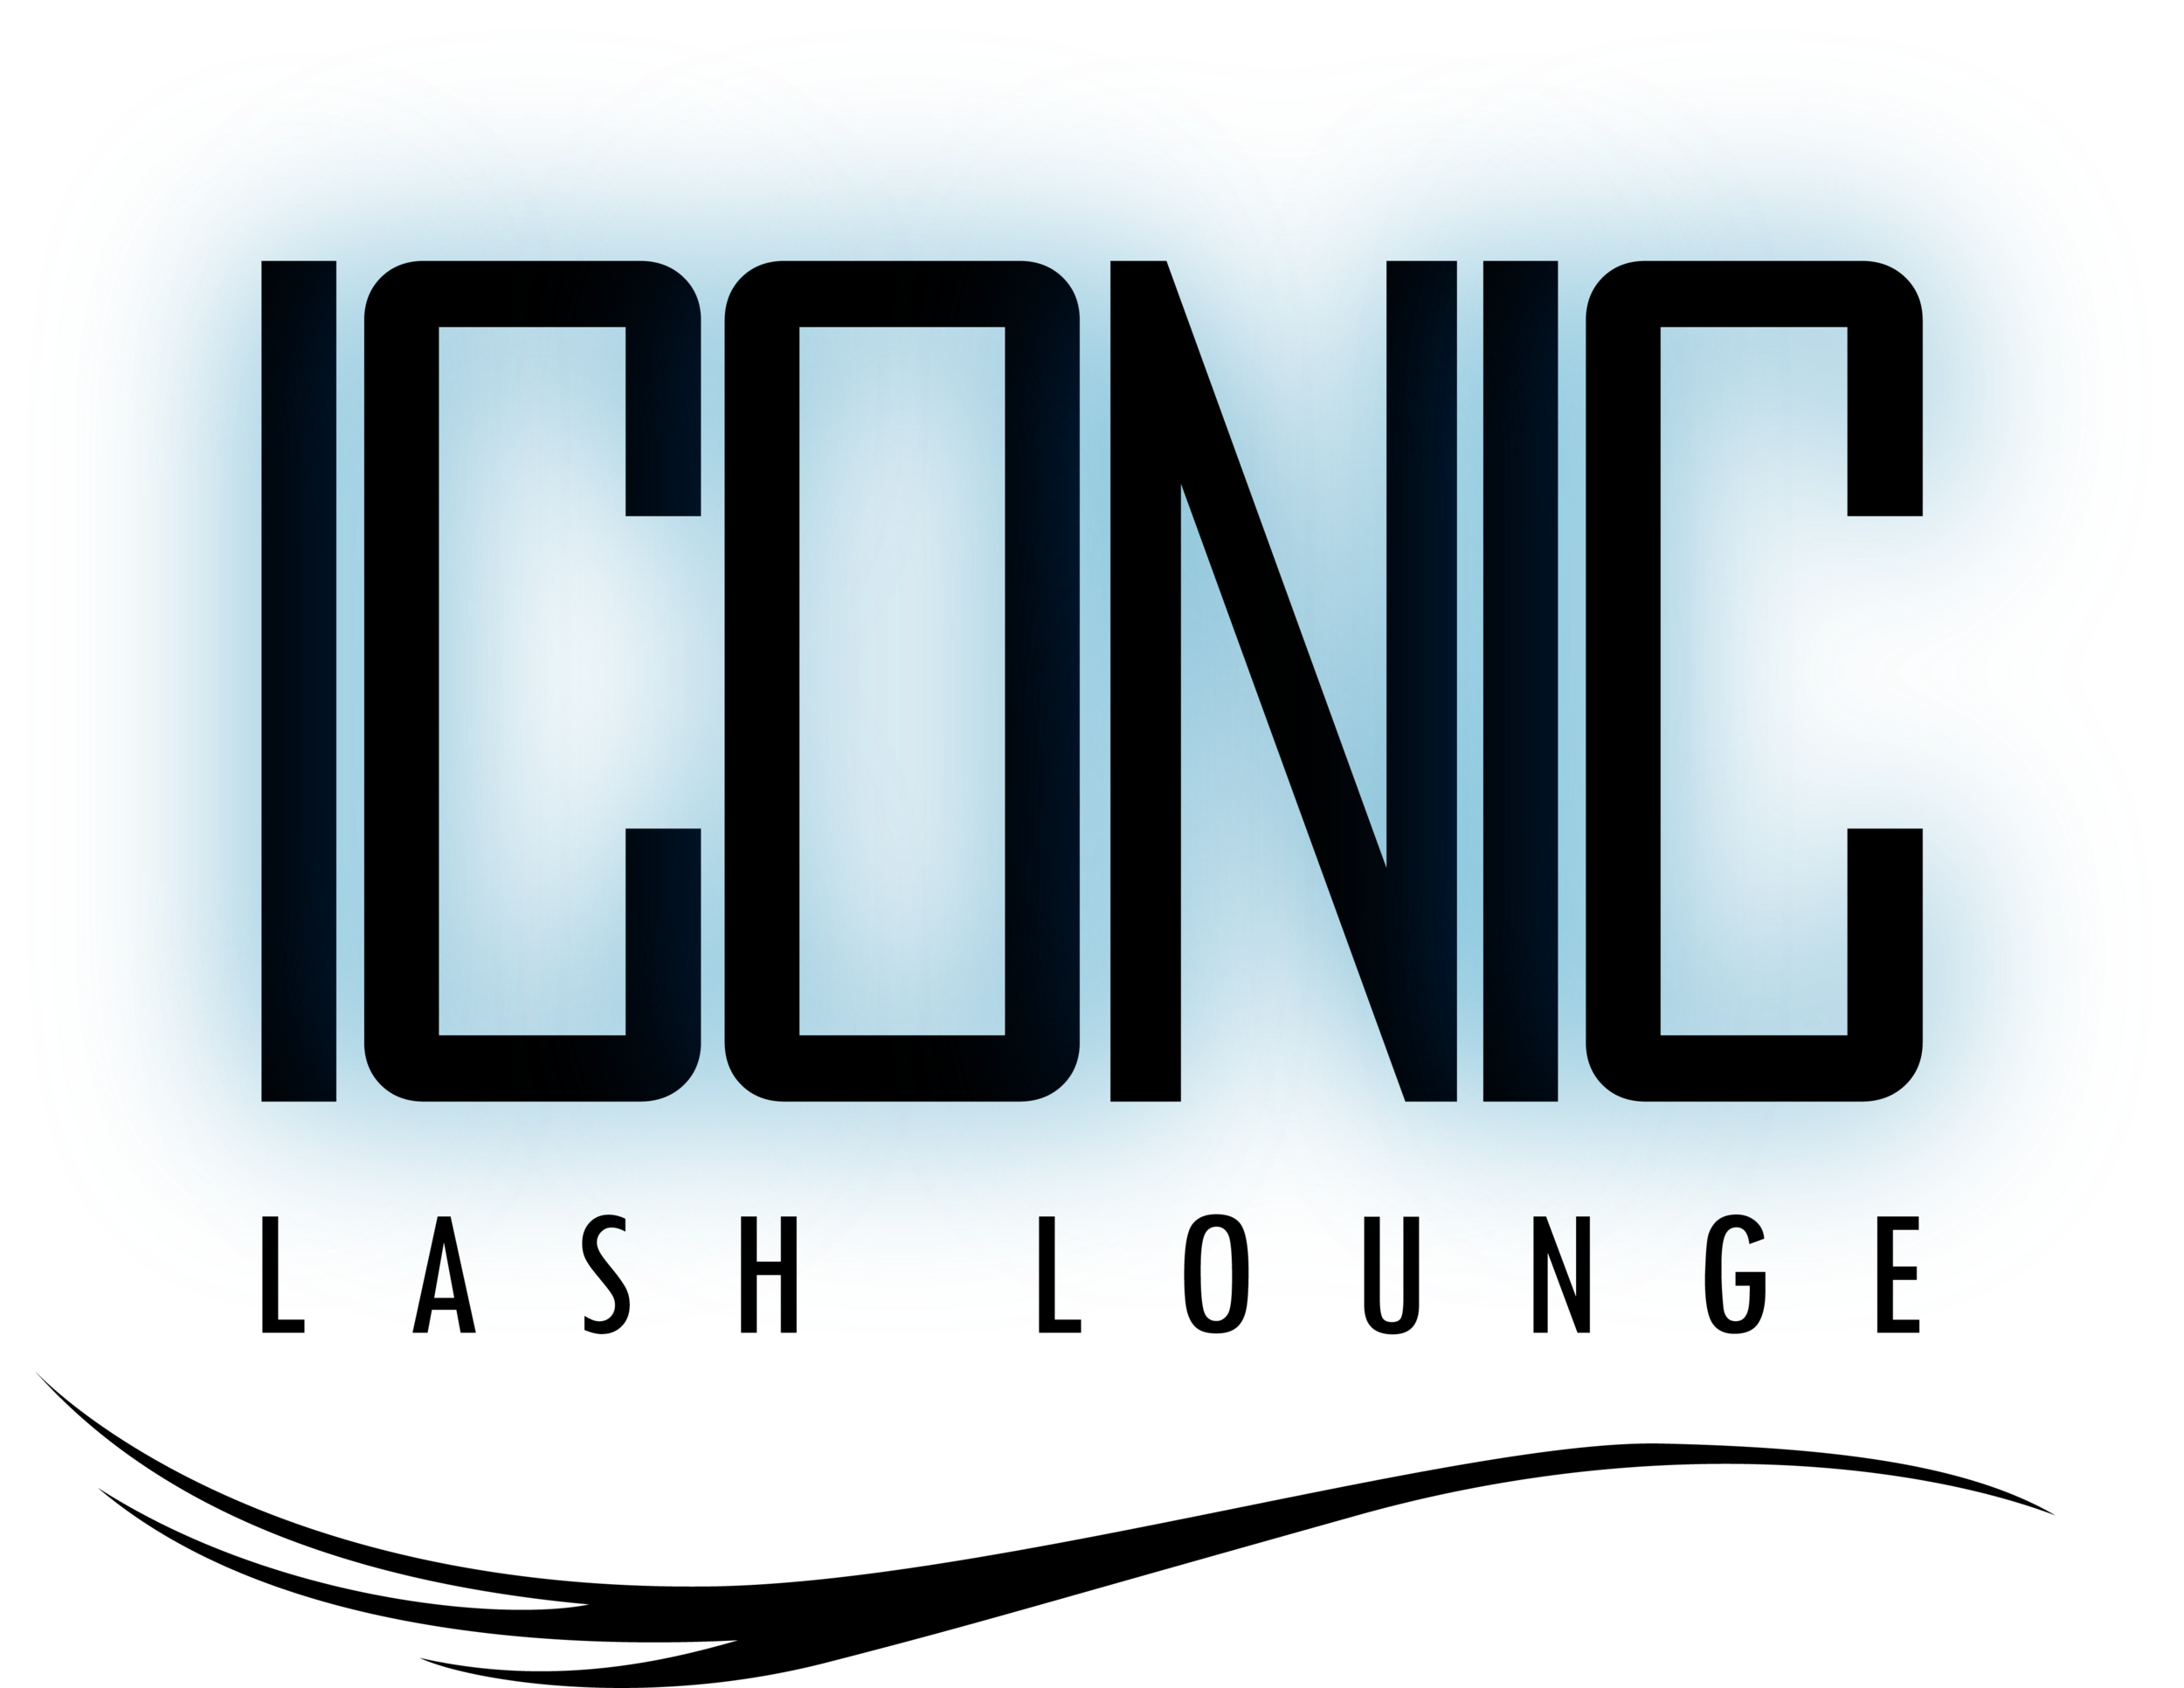 Iconic Lash Lounge